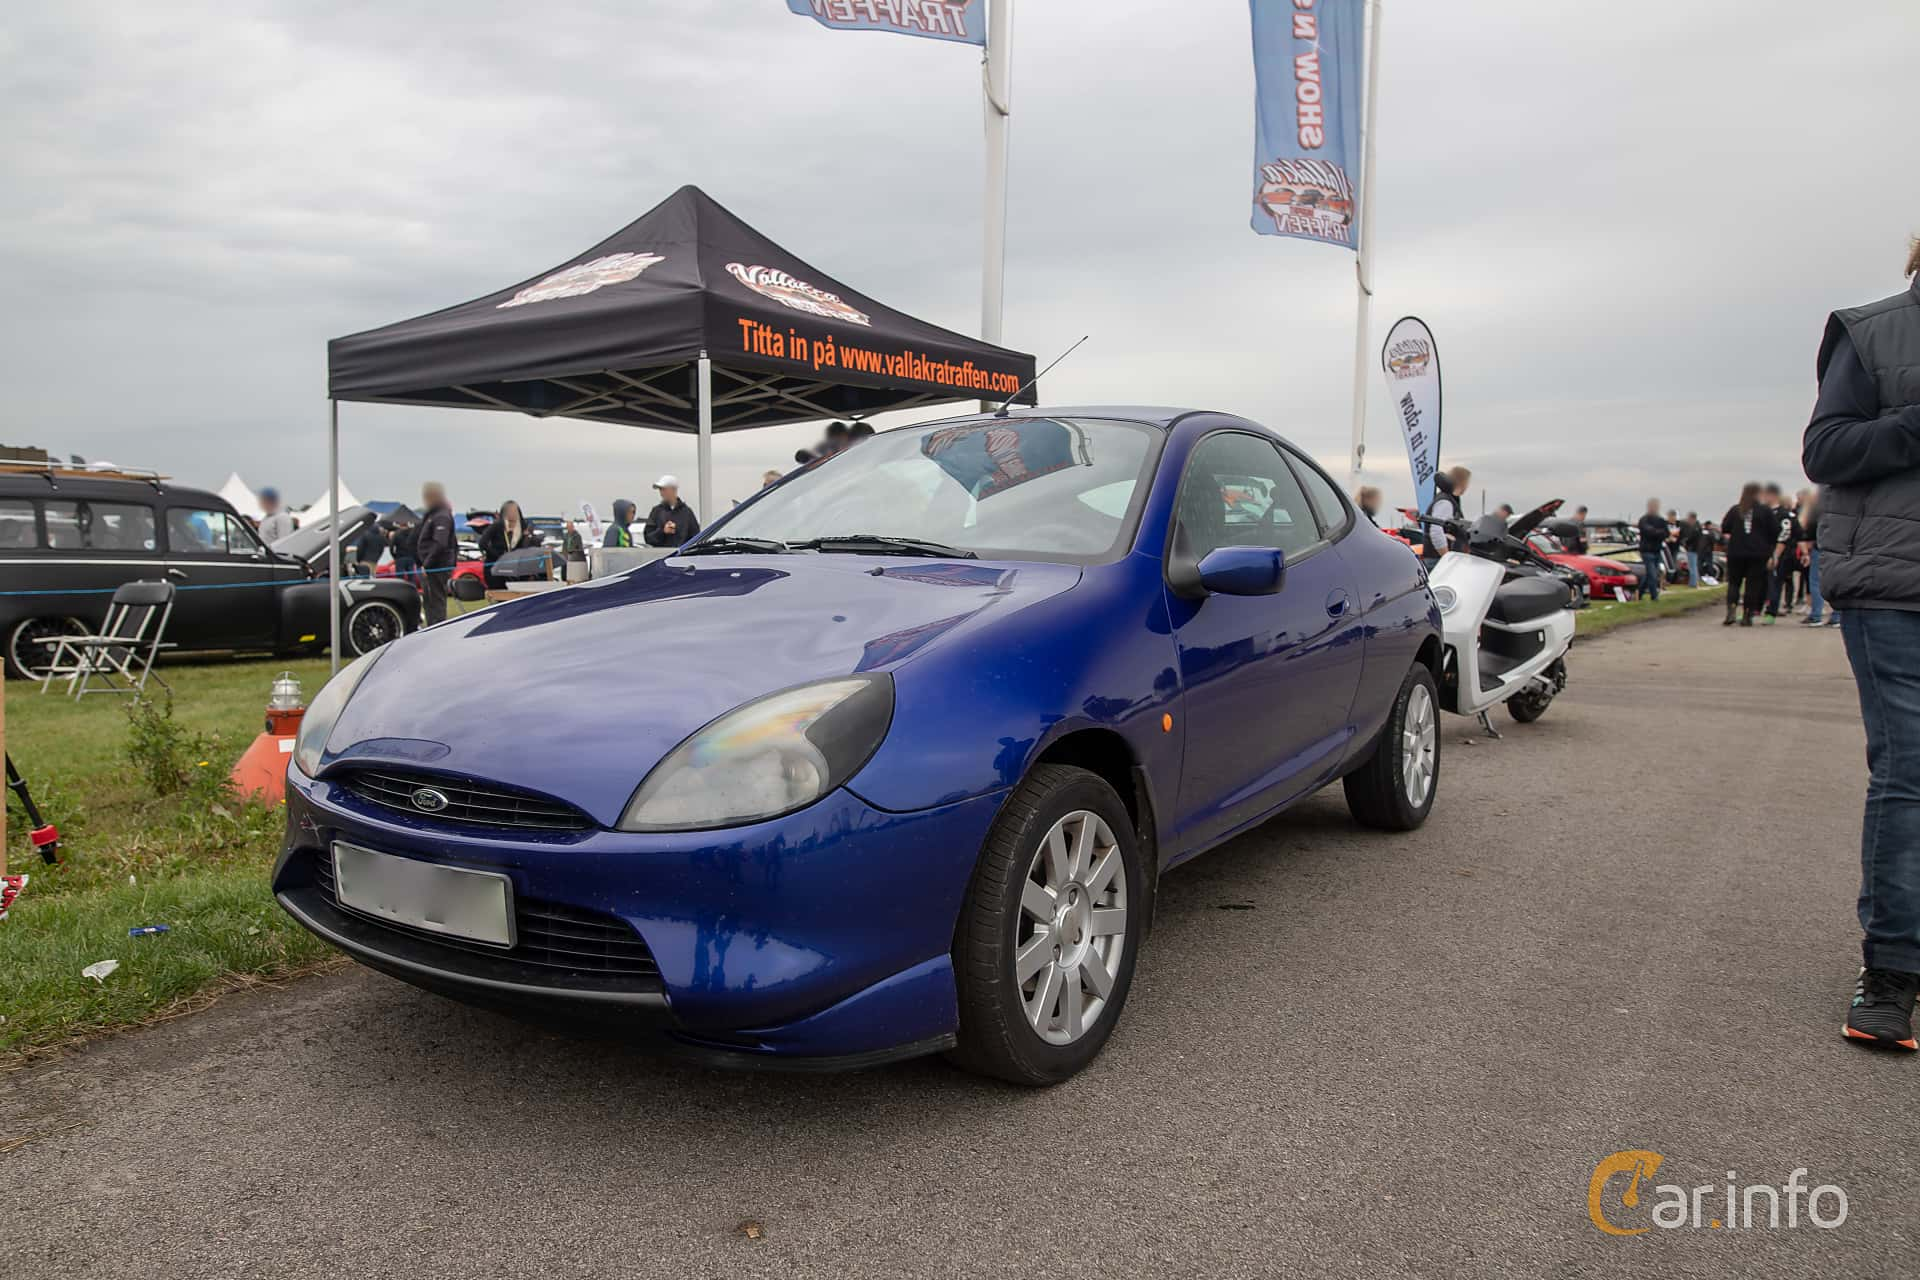 Vadear Reino escala  4 images of Ford Puma 1.7 Manual, 125hp, 2001 by Mbe